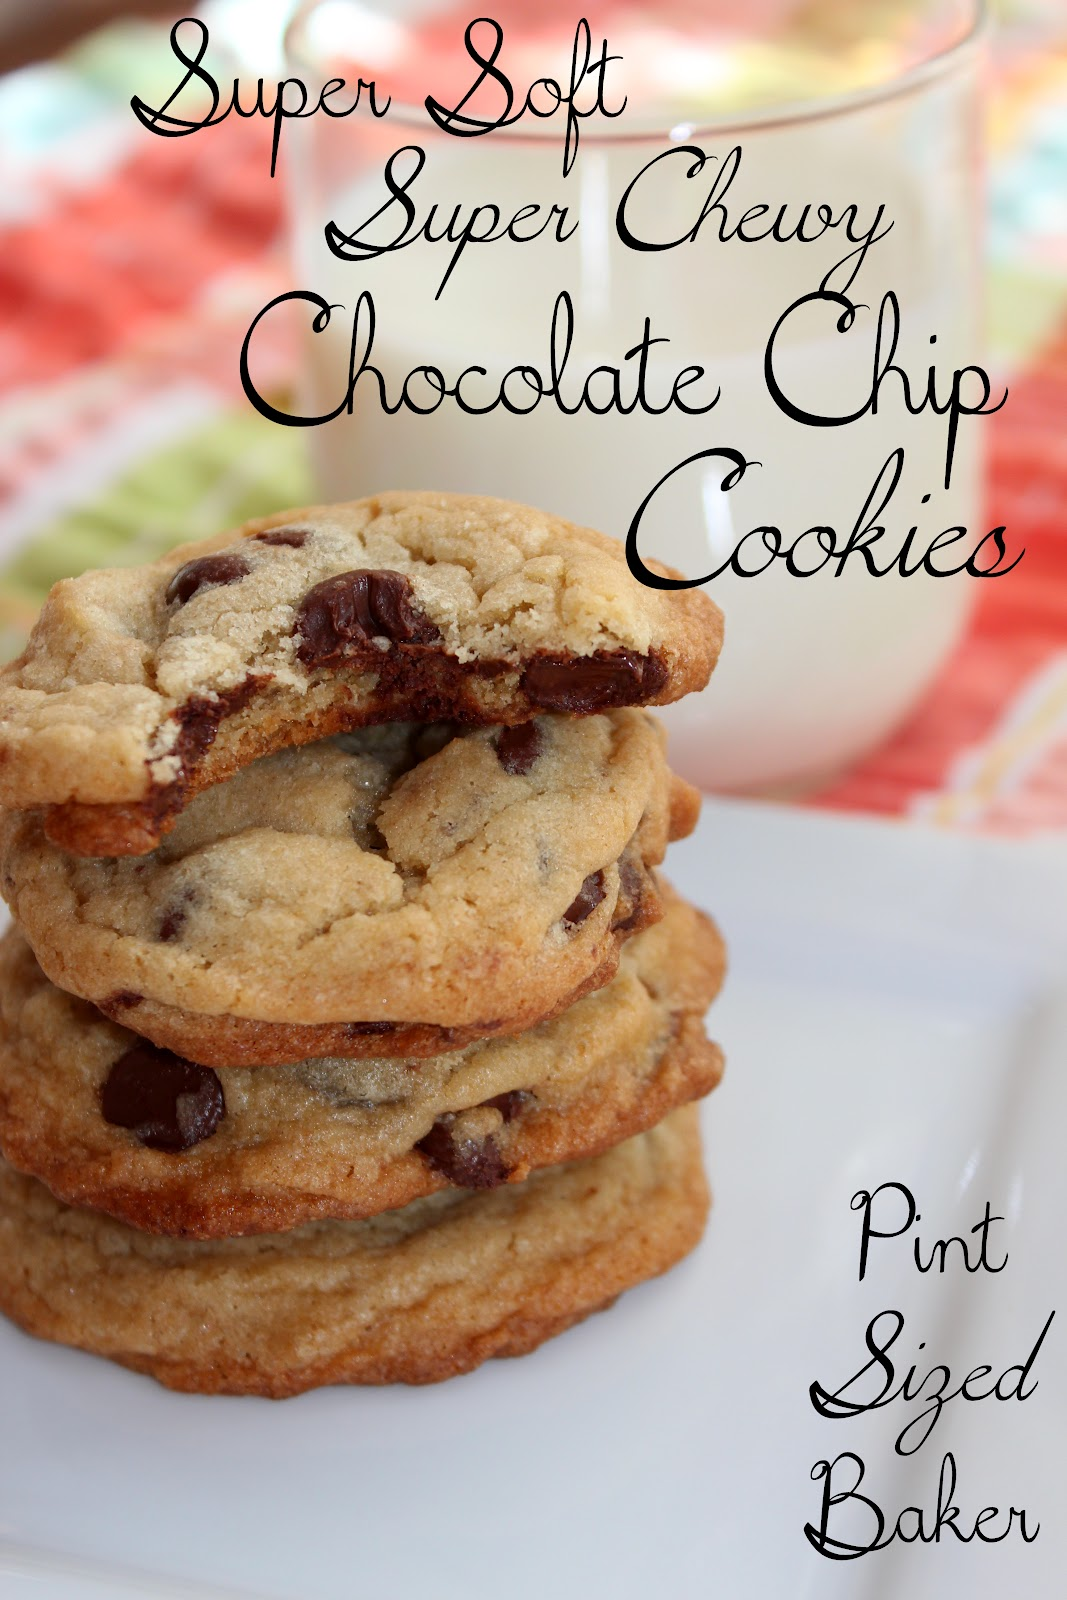 Pint Sized Baker: Soft and Chewy Chocolate Chip Cookies